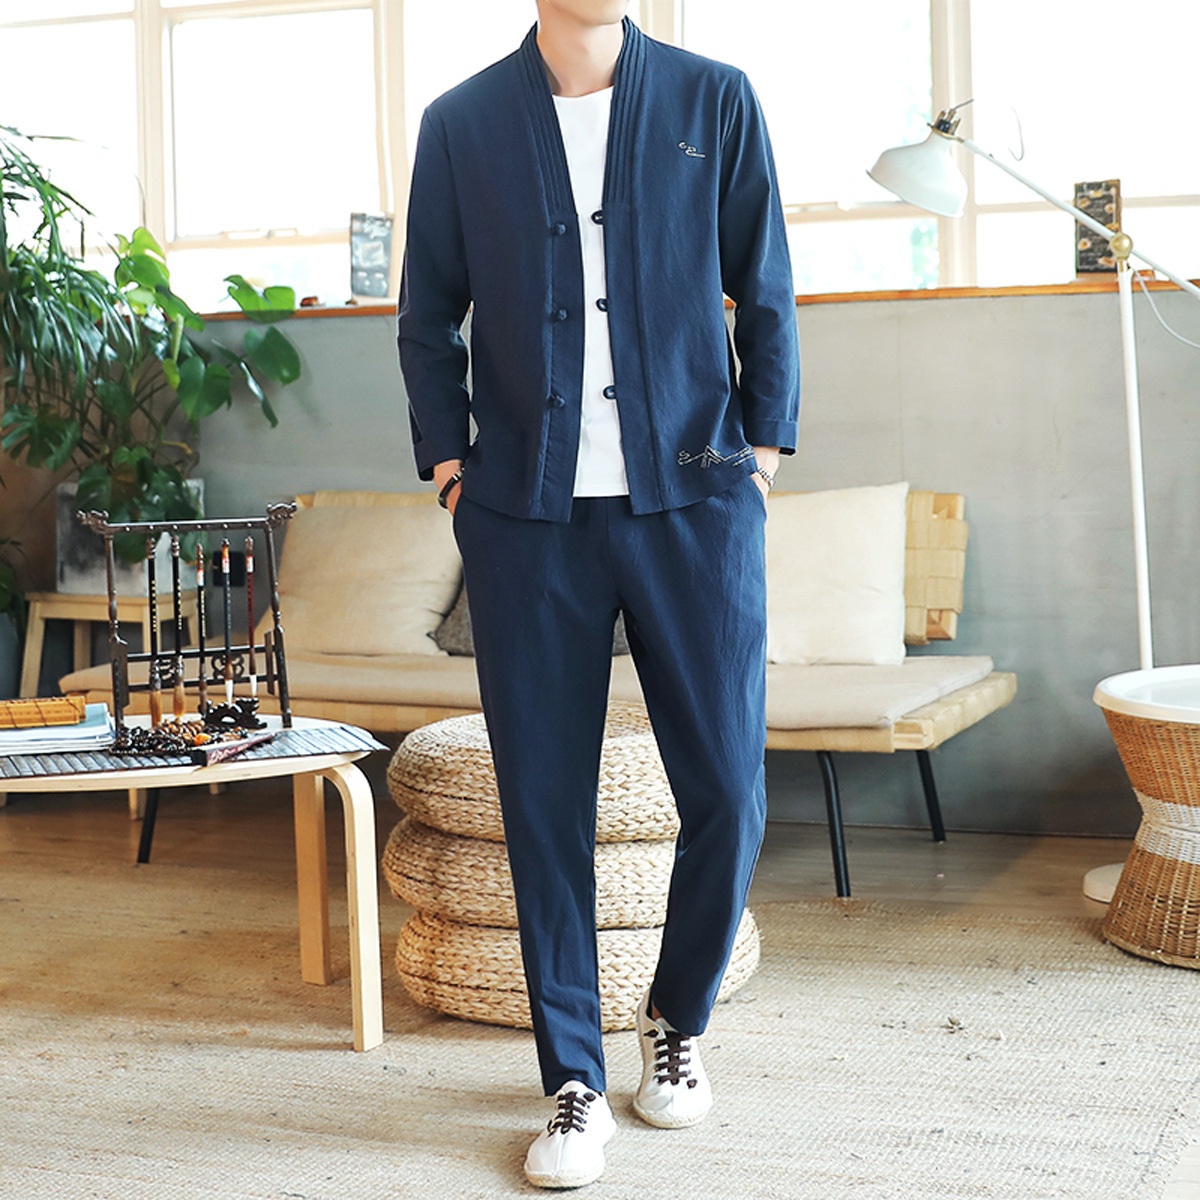 Chinese-style 2019 New Style Jacket Suits Loose-Fit Korean-style Cardigan MEN'S T-shirt Casual Spring And Autumn Cotton Linen Se